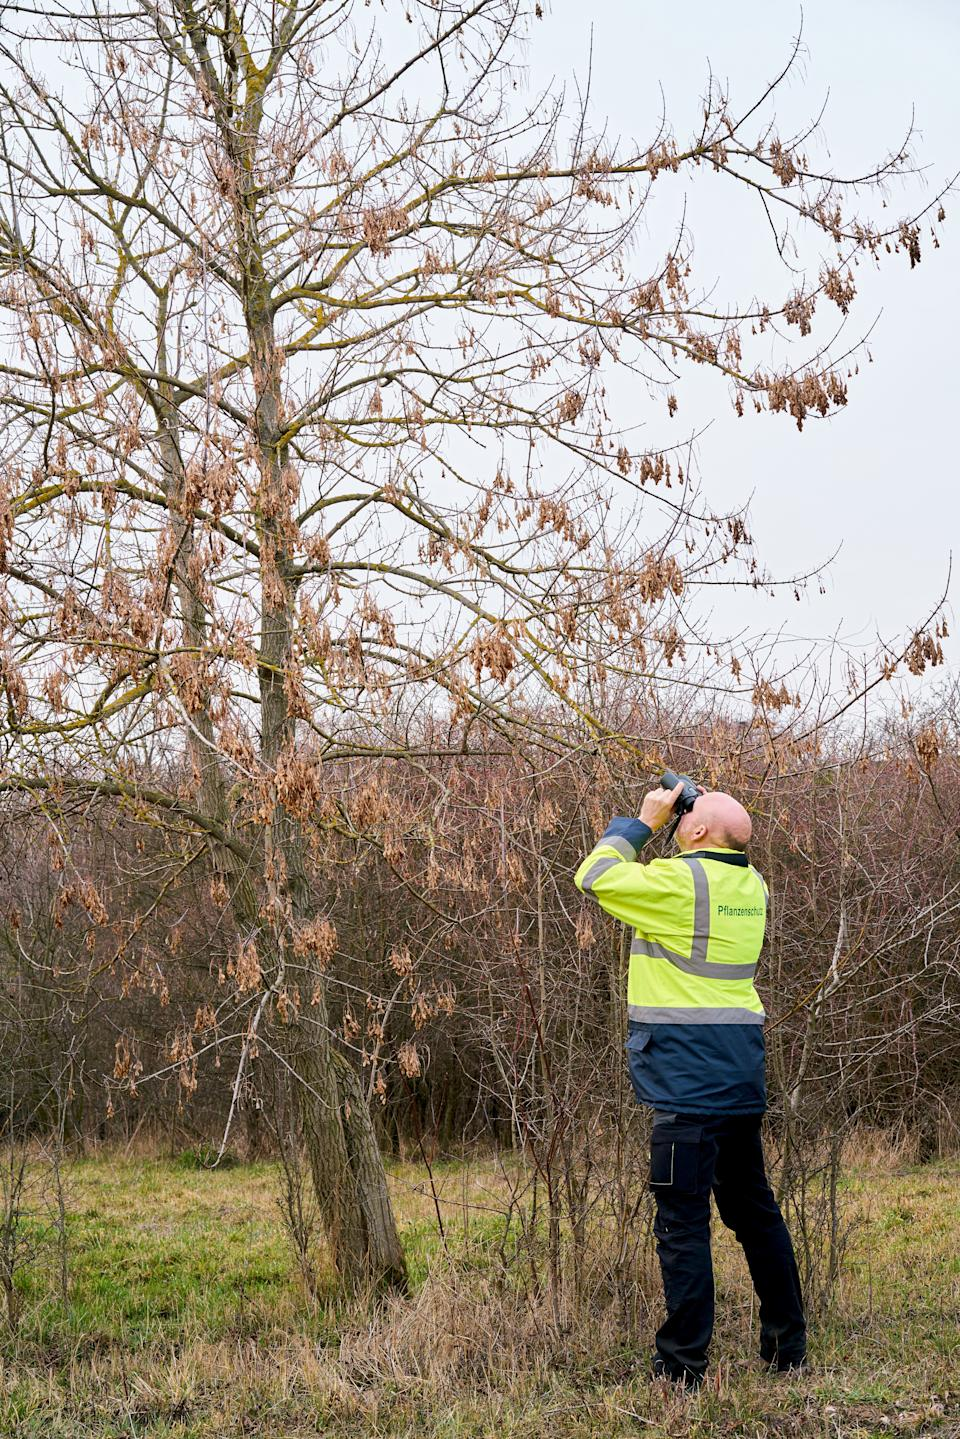 Expert during the examination of trees for a possible pest infestation by the Asian longhorned beetle